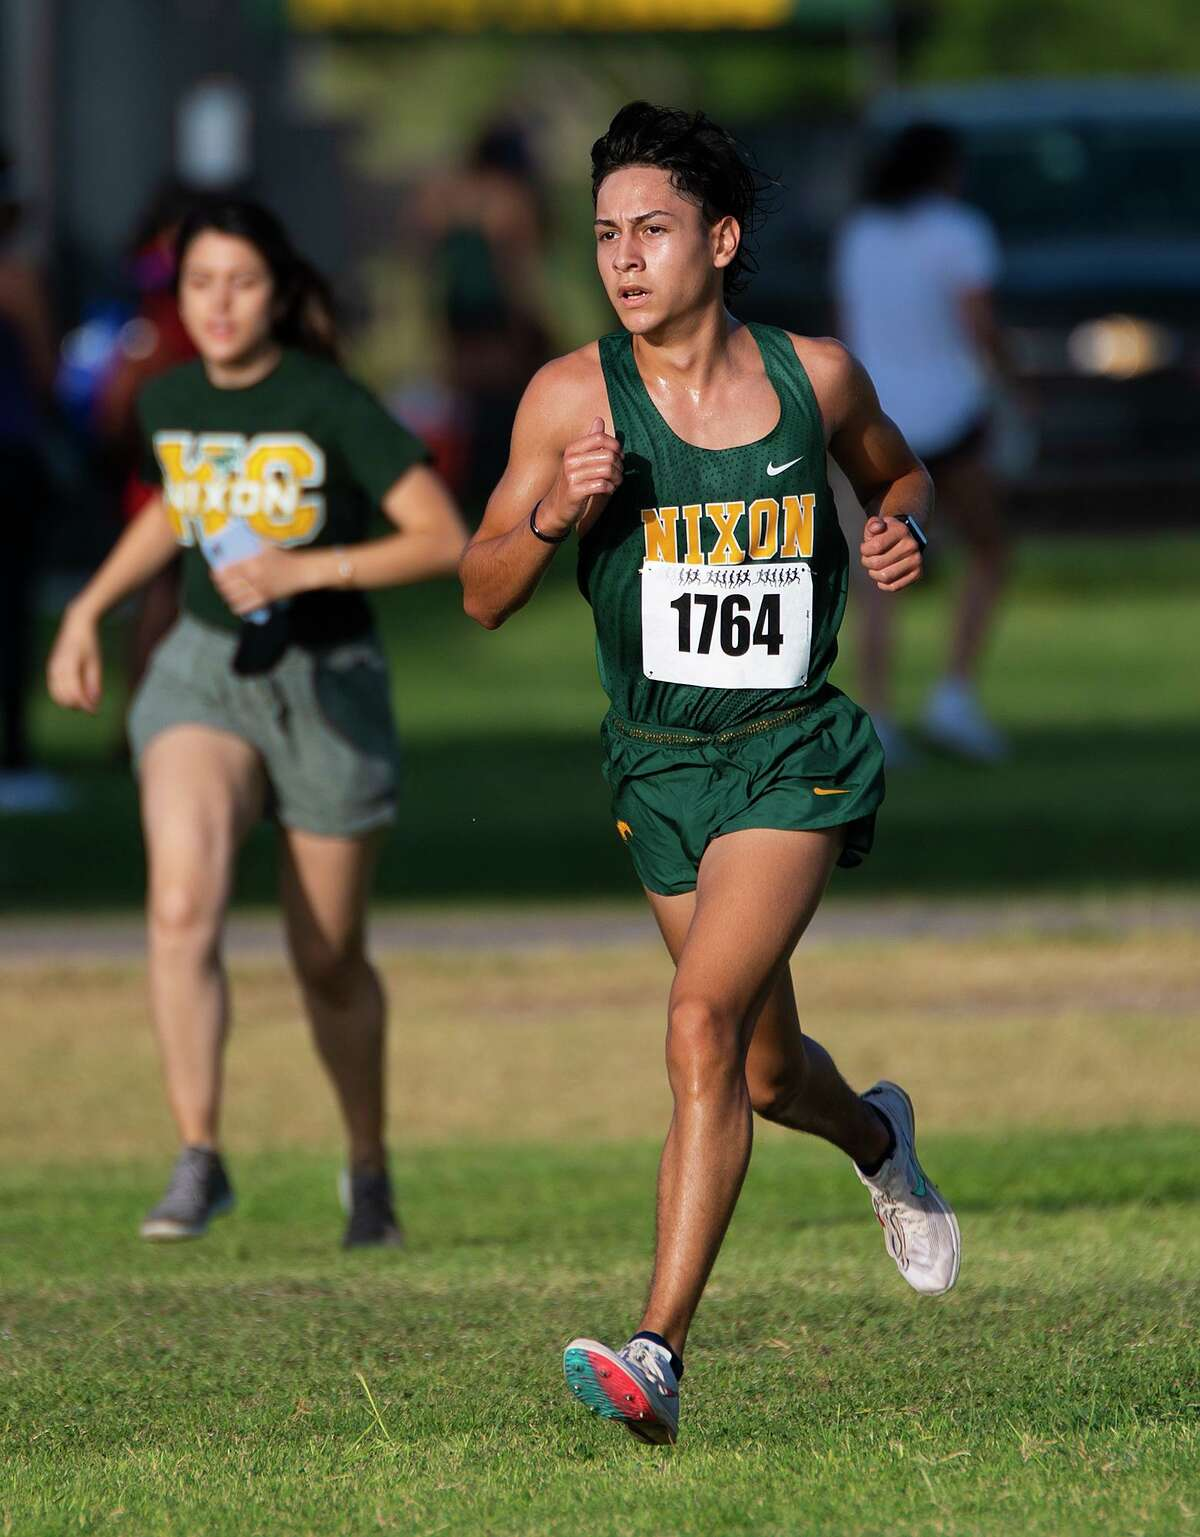 Nixon High School's Margarito Benavides is expected to take home the individual title in the boys race at Thursday's District 30-5A meet.